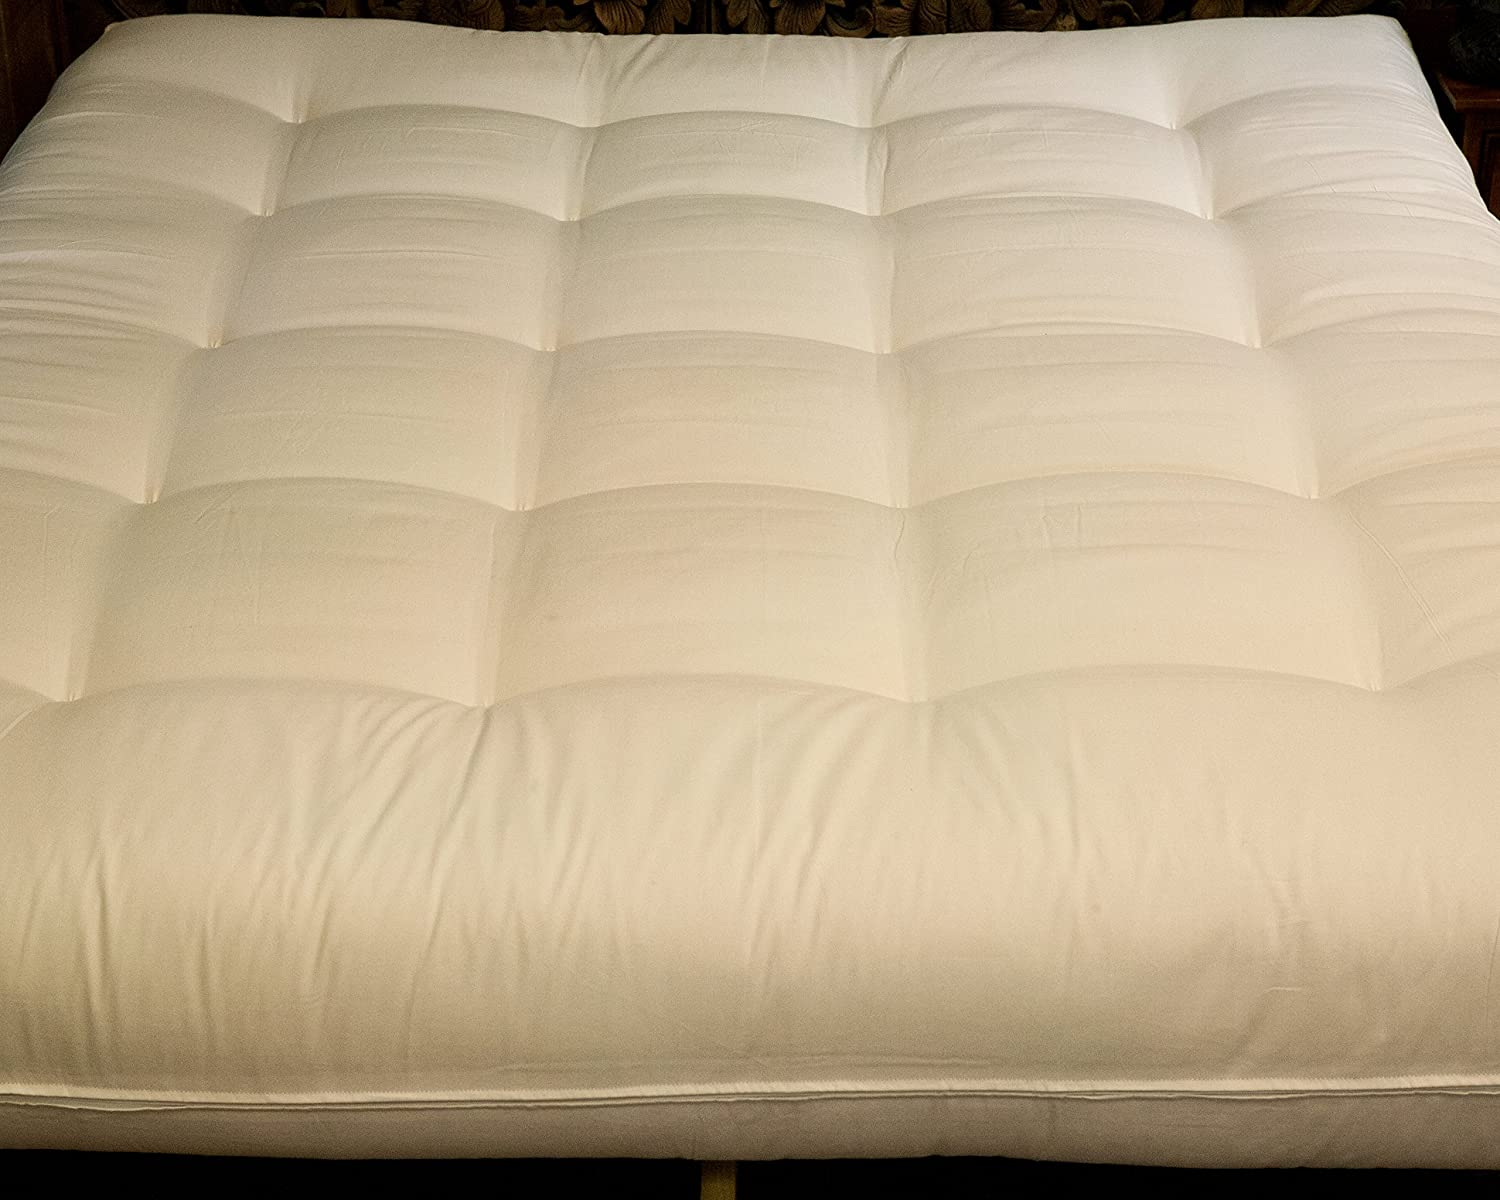 Cotton Cloud Natural Beds and Furniture Pearl King Size Bed Mattress